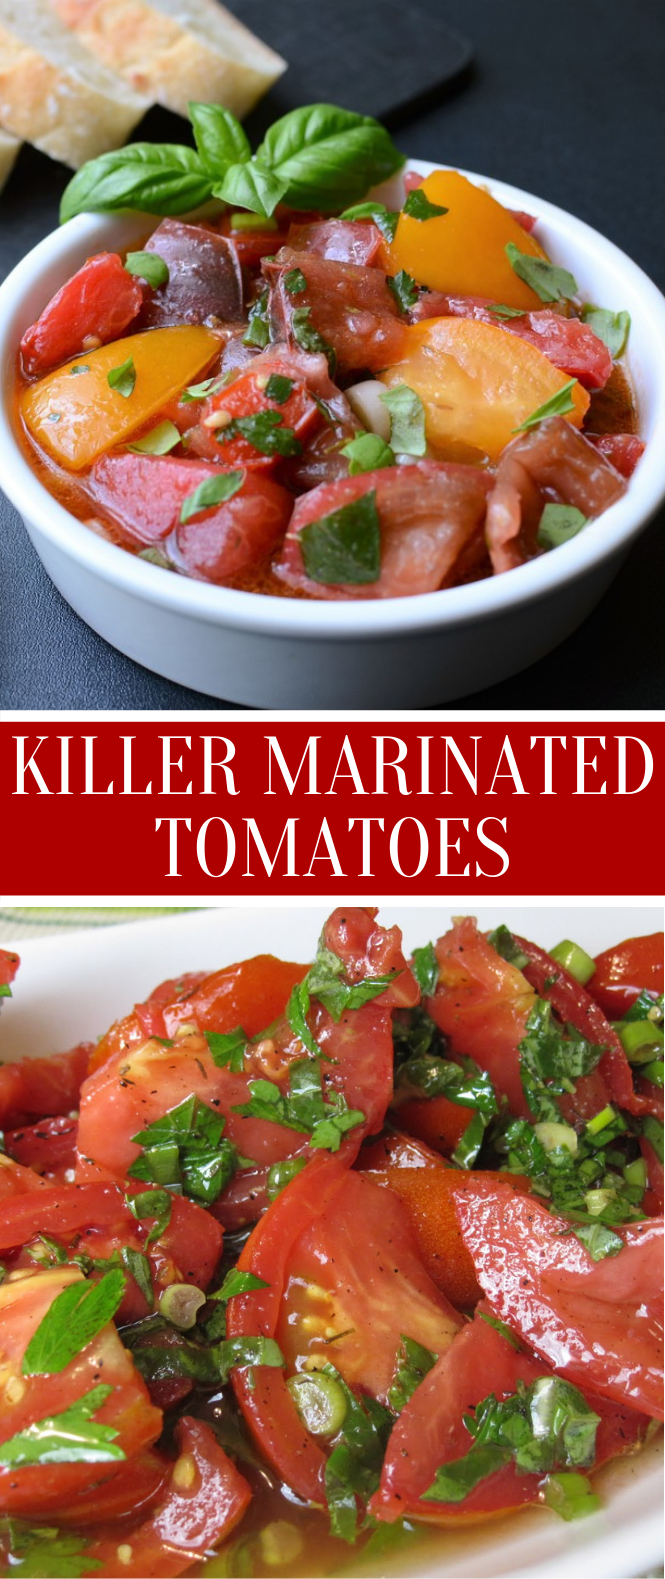 Killer Marinated Tomatoes #vegetable #appetizers